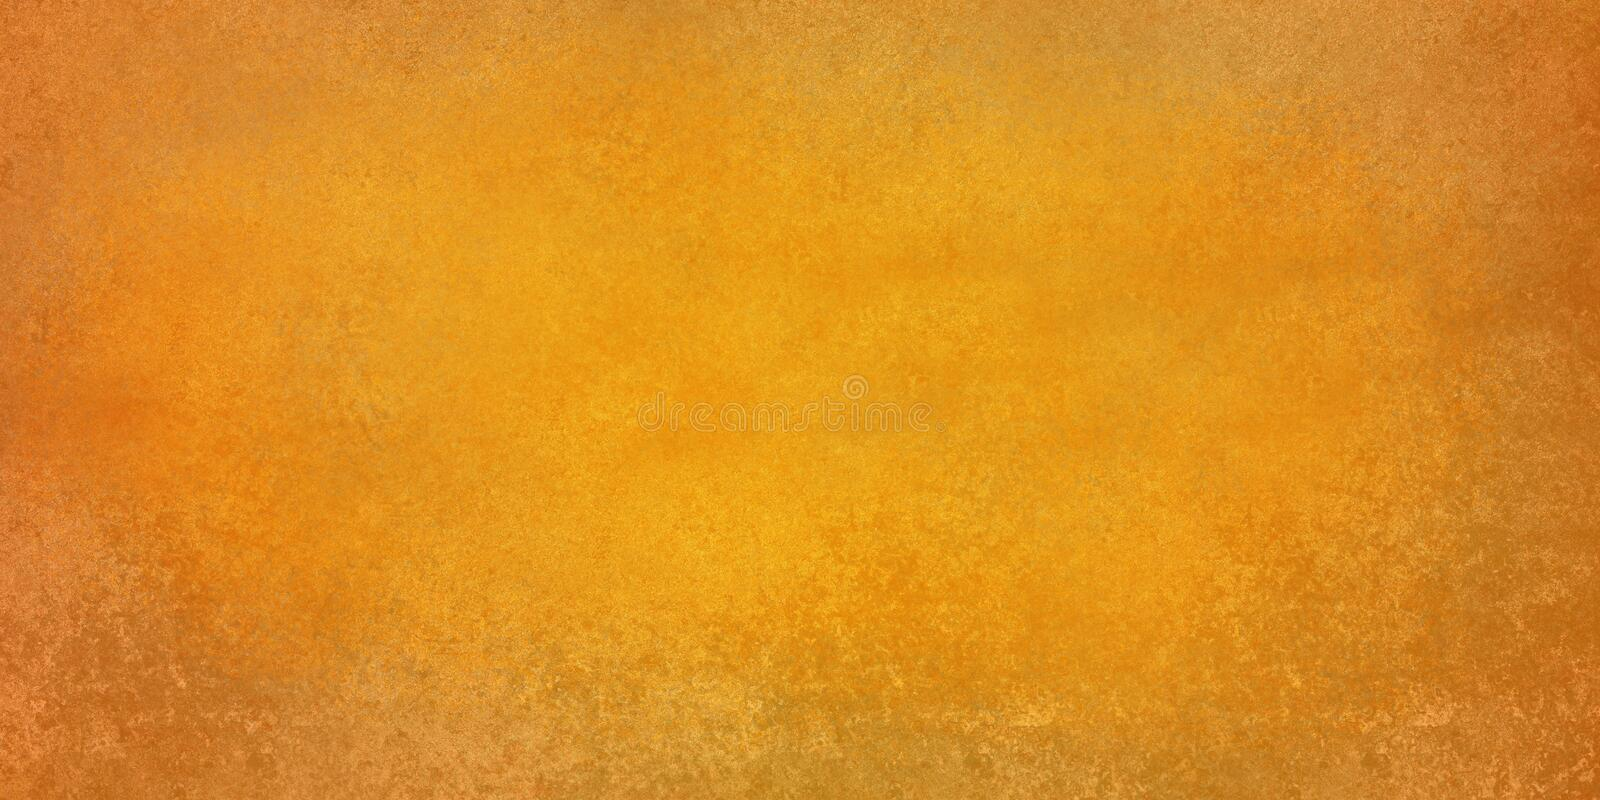 Vintage gold background with warm orange autumn hues, damaged distressed texture. Old vintage gold background with warm orange autumn hues, damaged distressed royalty free illustration